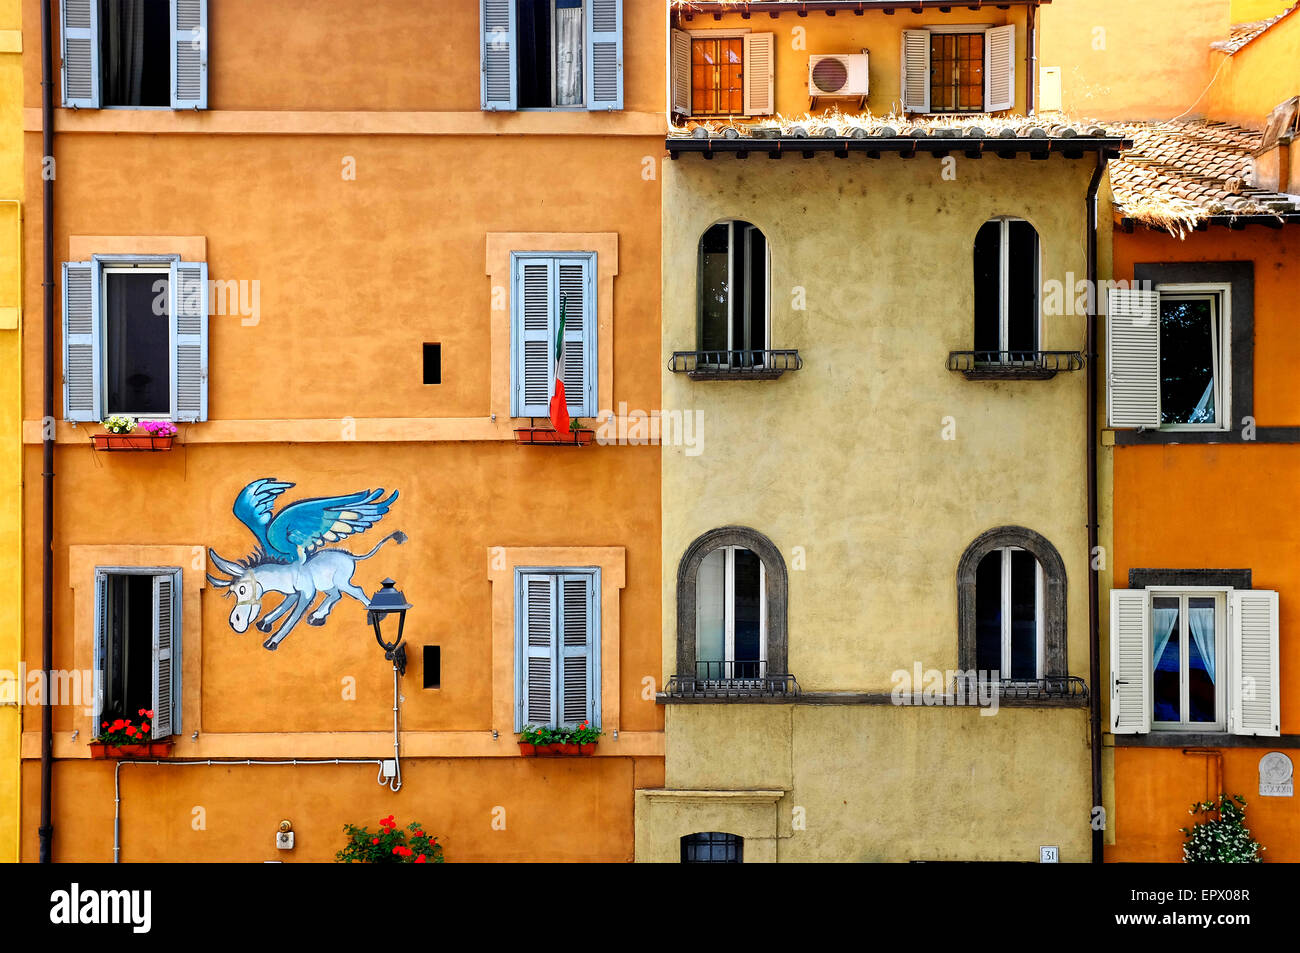 The flying donkey (1976), the first modern graffiti in Via Tor di Nona, Rome, Italy - Stock Image